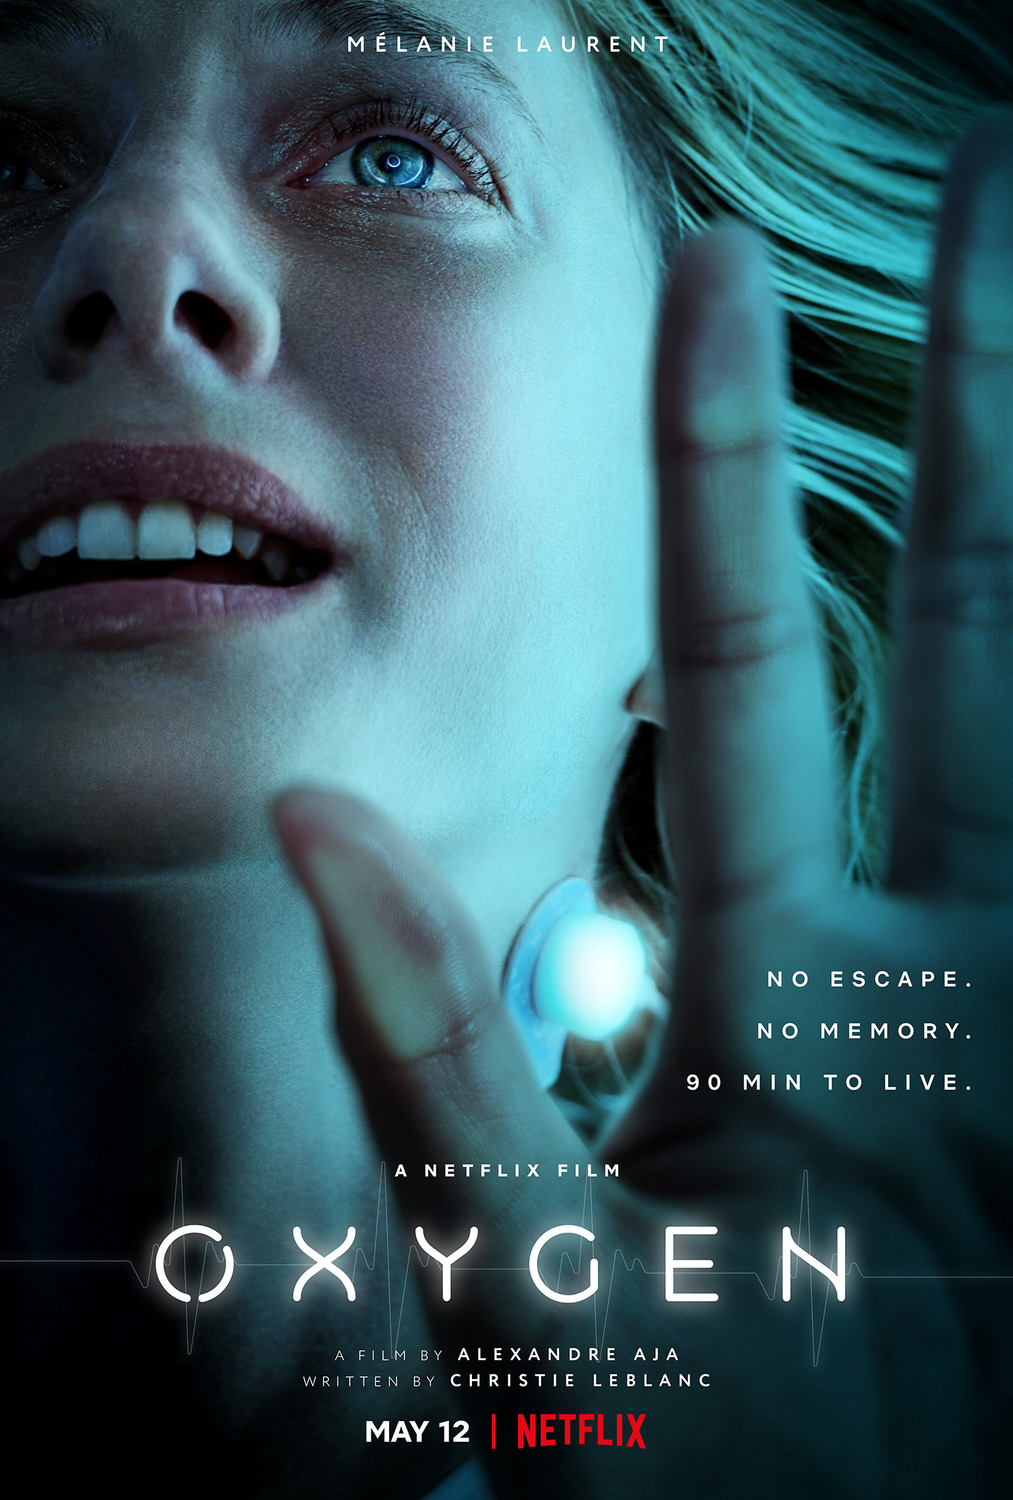 Full Trailer for the Sci-fi Thriller Oxygen by Alexandre Aja with Melanie Laurent